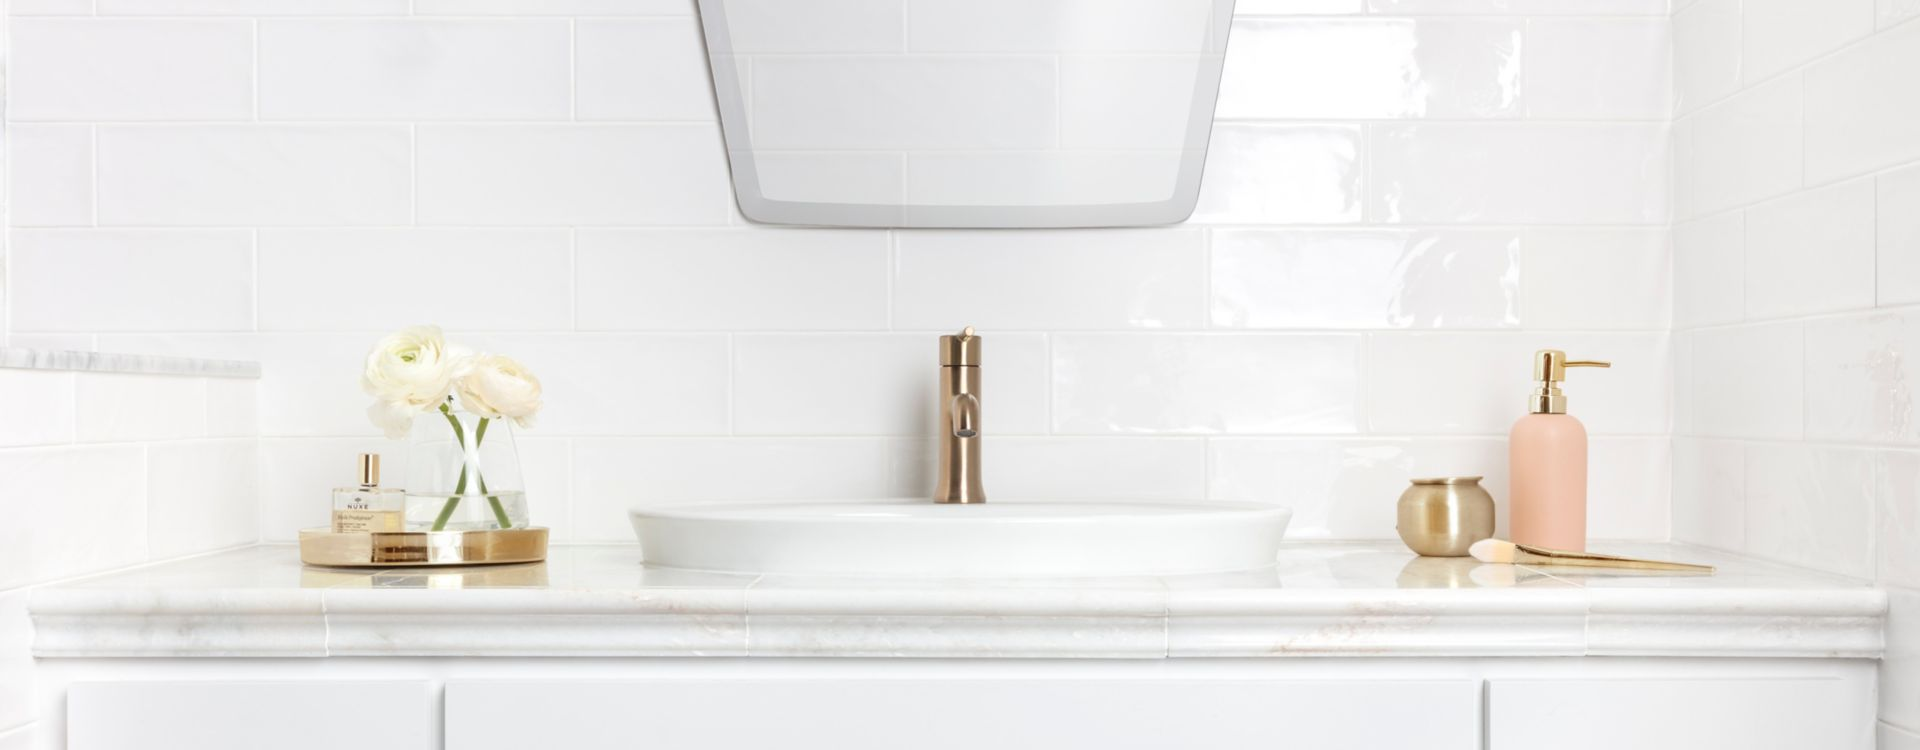 Backsplash Tile Ideas Collection A white backsplash can reflect light to create a clean, bright vibe in your  bathroom.